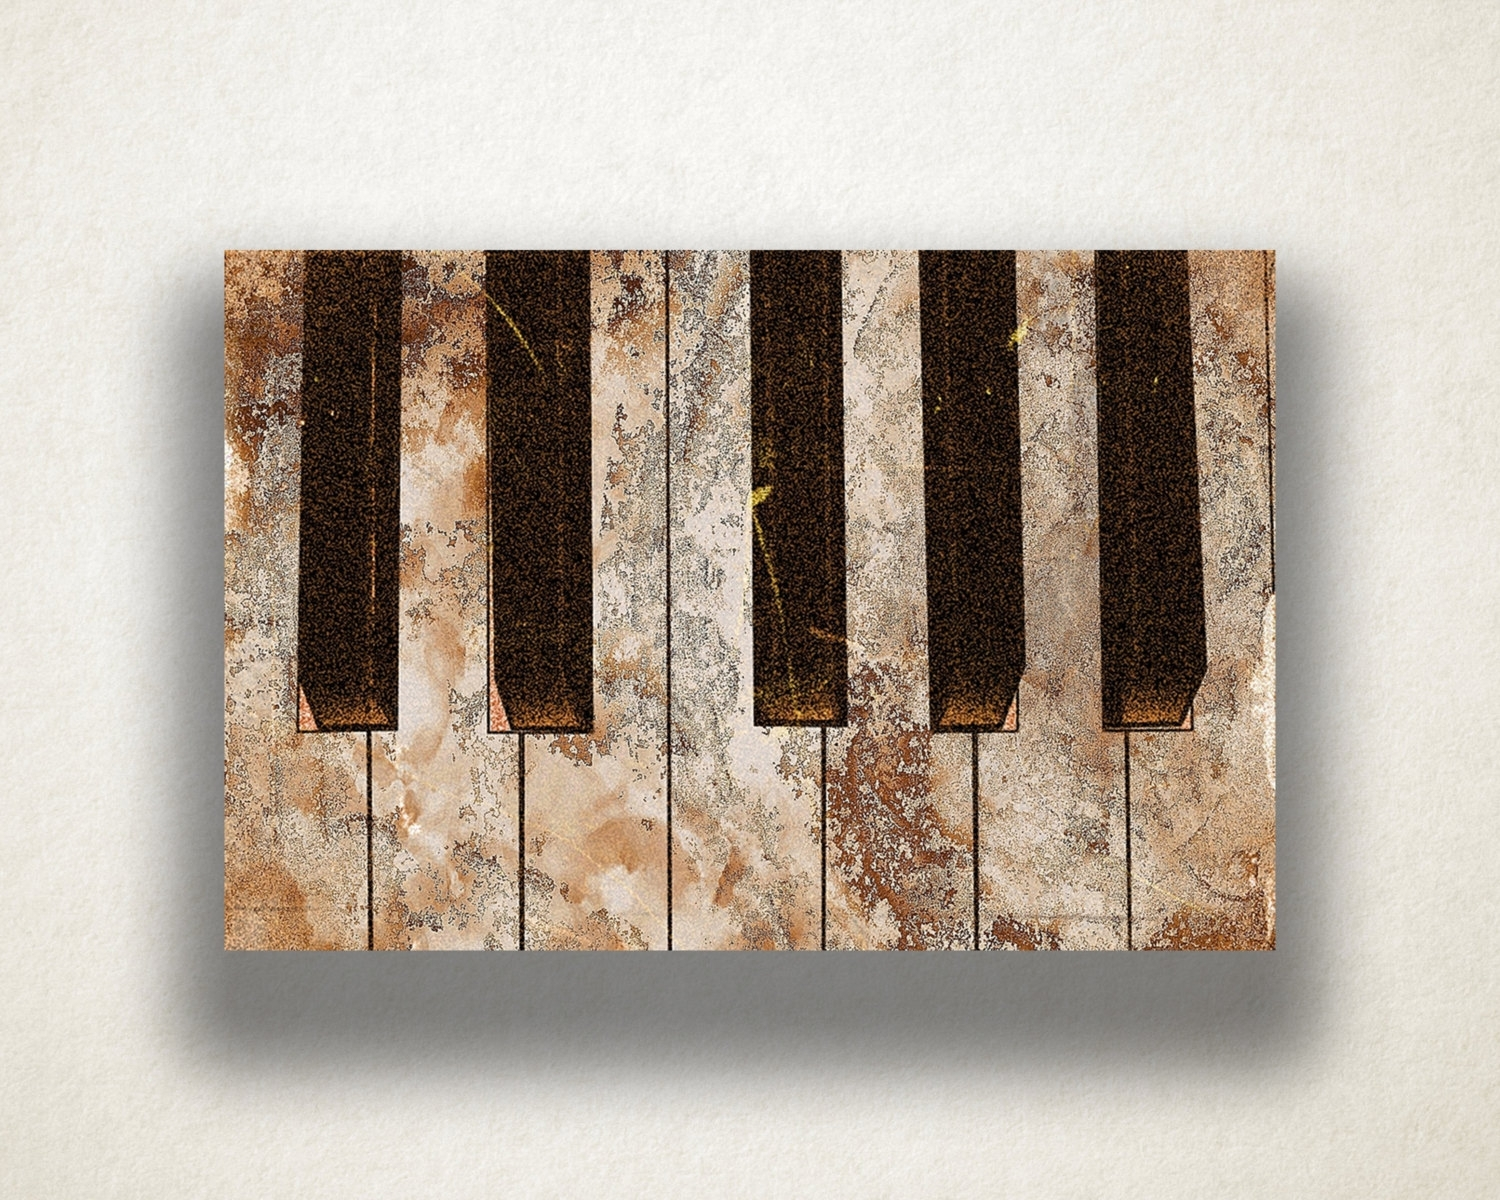 Piano Painting Canvas Art Print, Piano Keys Wall Art, Music Canvas Throughout Latest Music Canvas Wall Art (Gallery 12 of 15)